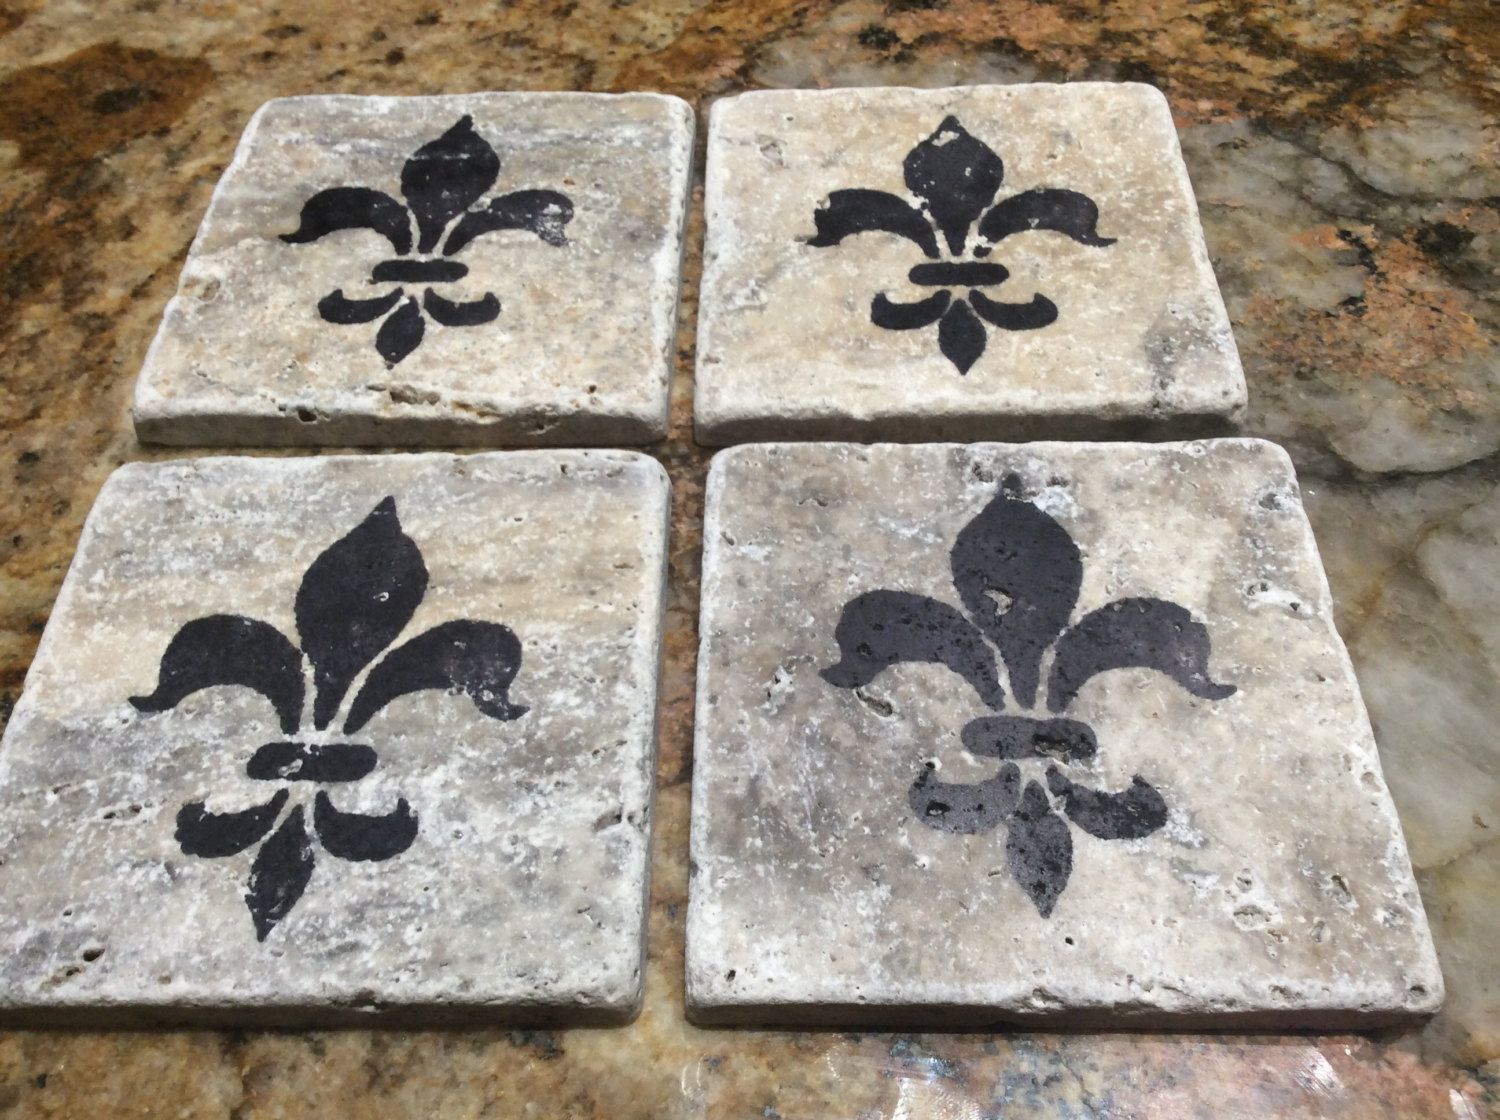 Stone Decorative Tiles Alluring Use Coupon Code Pinterest15 For 15% Offfleur De Lis Drink Inspiration Design